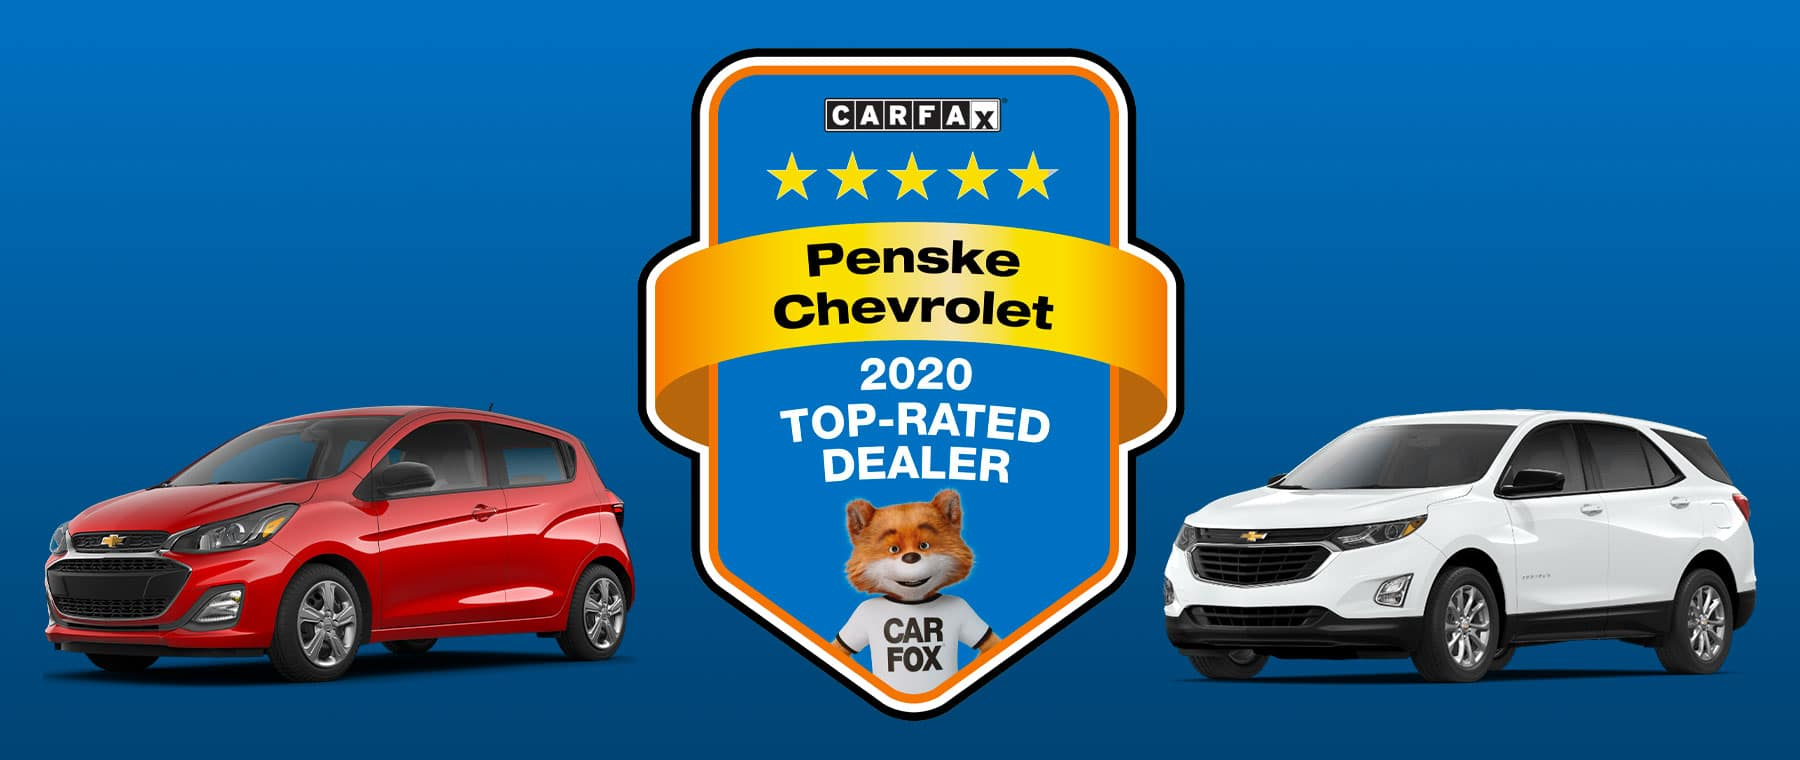 2020 Top-Rated Dealer award from Carfax.